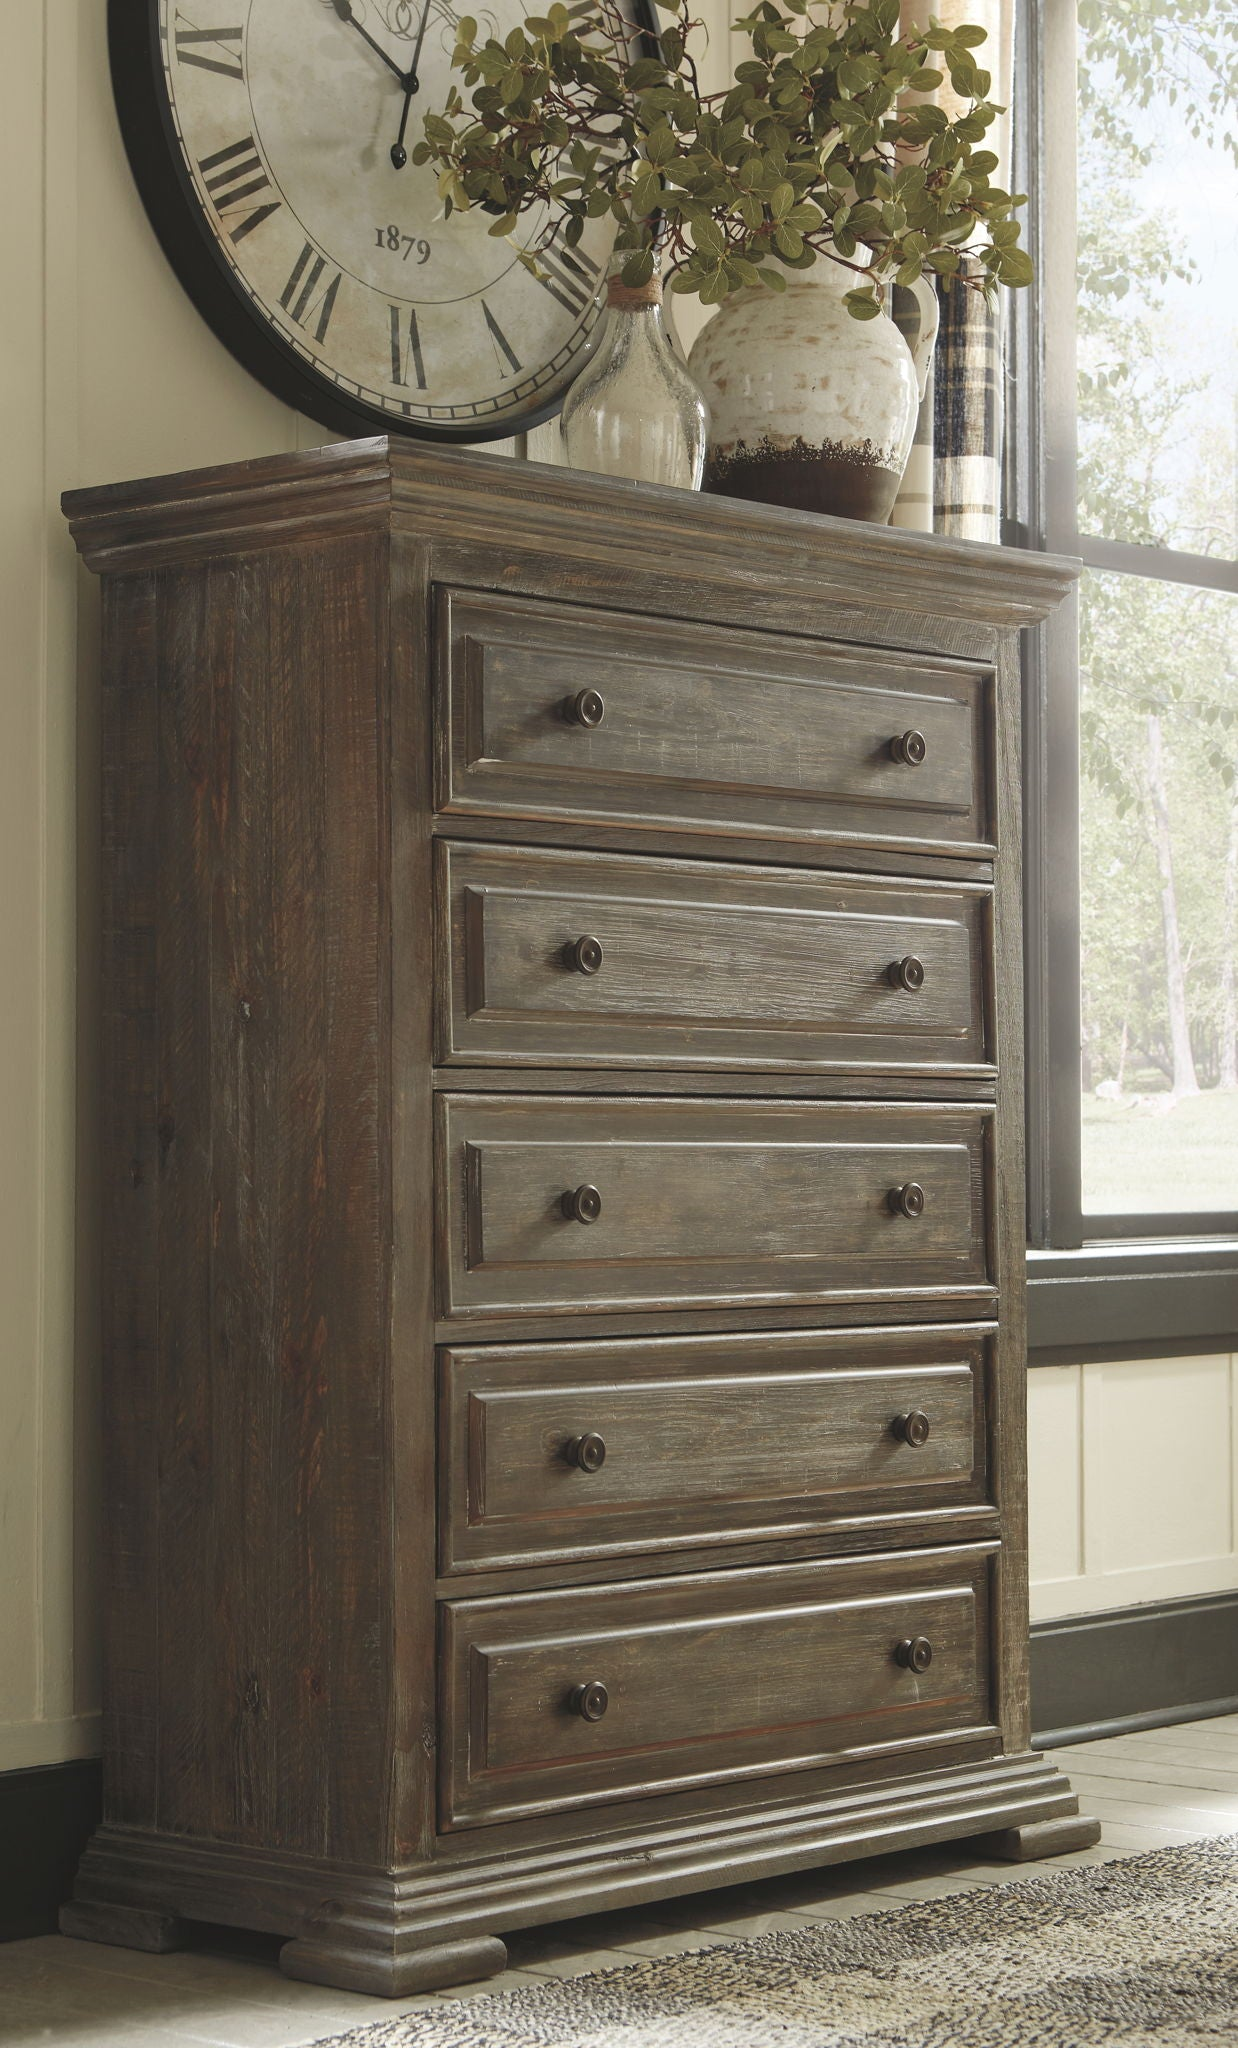 Wyndahl Chest of Drawers